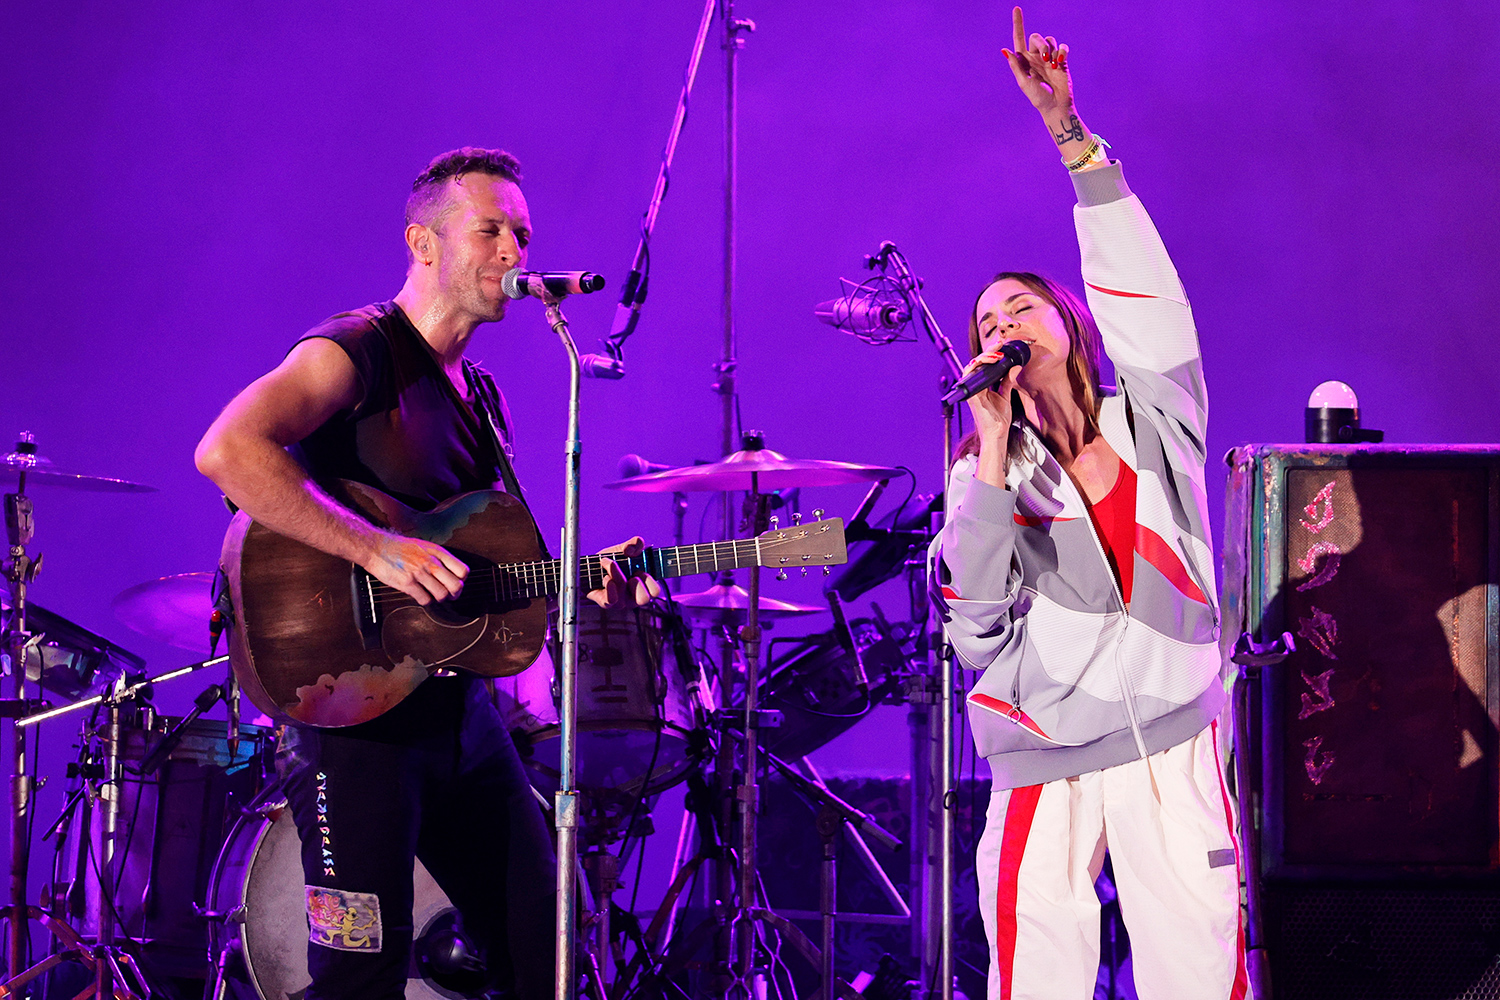 """Chris Martin of Coldplay and Melanie C perform onstage during the 8th annual """"We Can Survive"""" concert hosted by Audacy at Hollywood Bowl on October 23, 2021 in Los Angeles, California."""